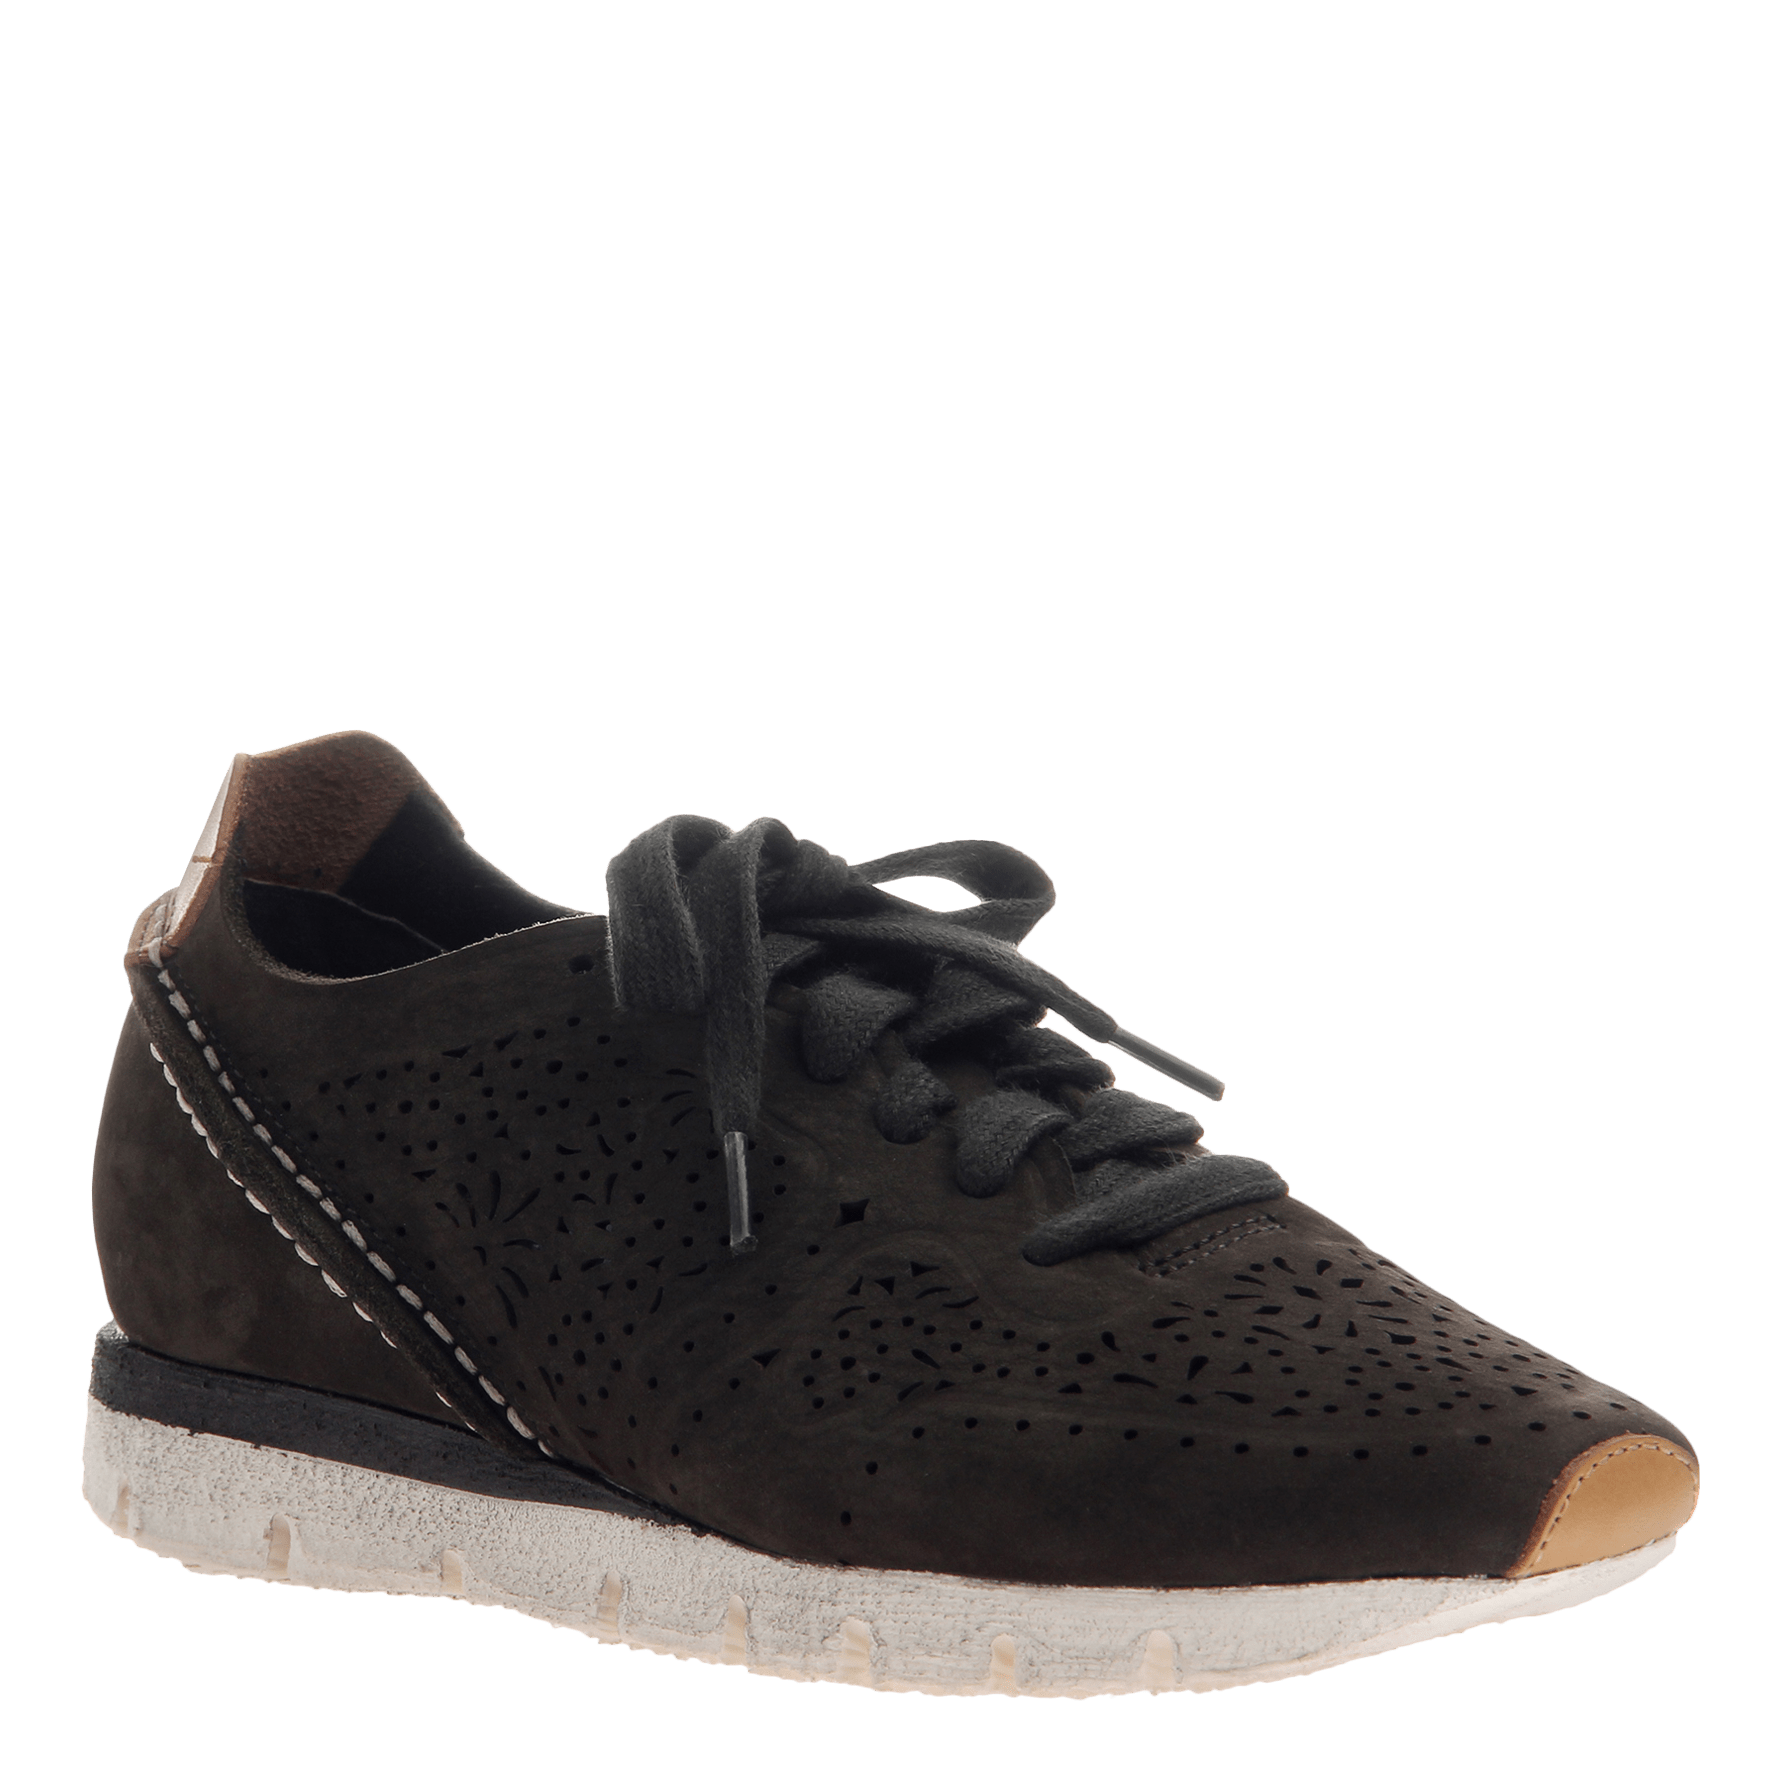 Khora women's sneaker in Dark Green